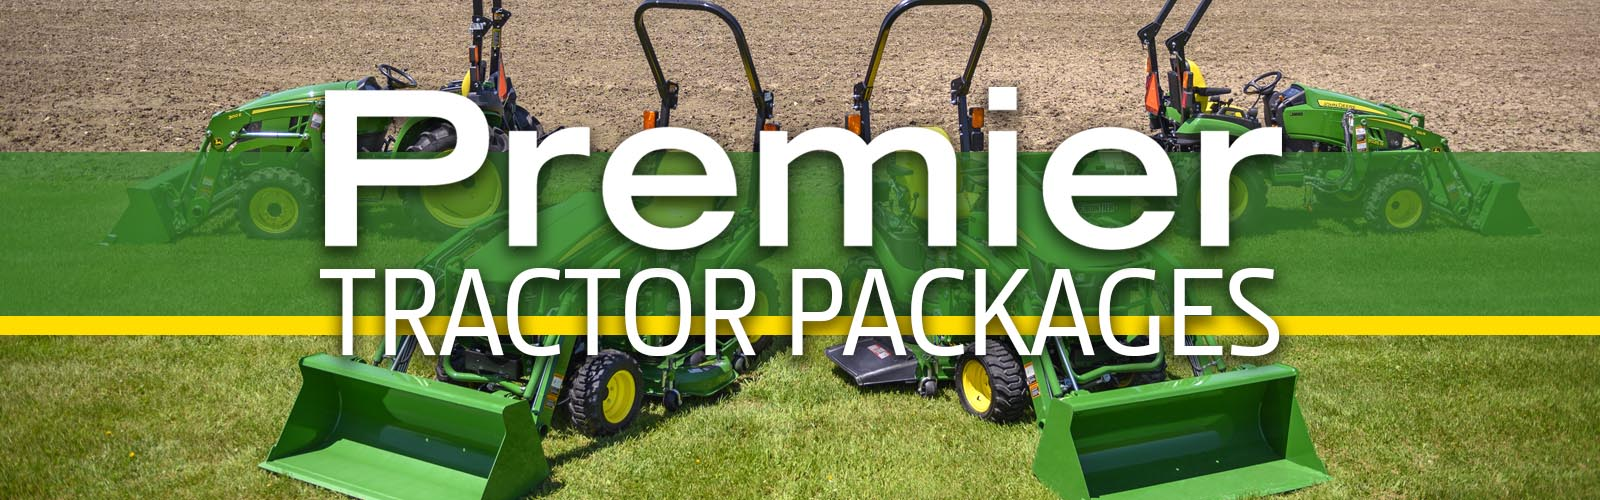 Premier John Deere Small Tractor Packages